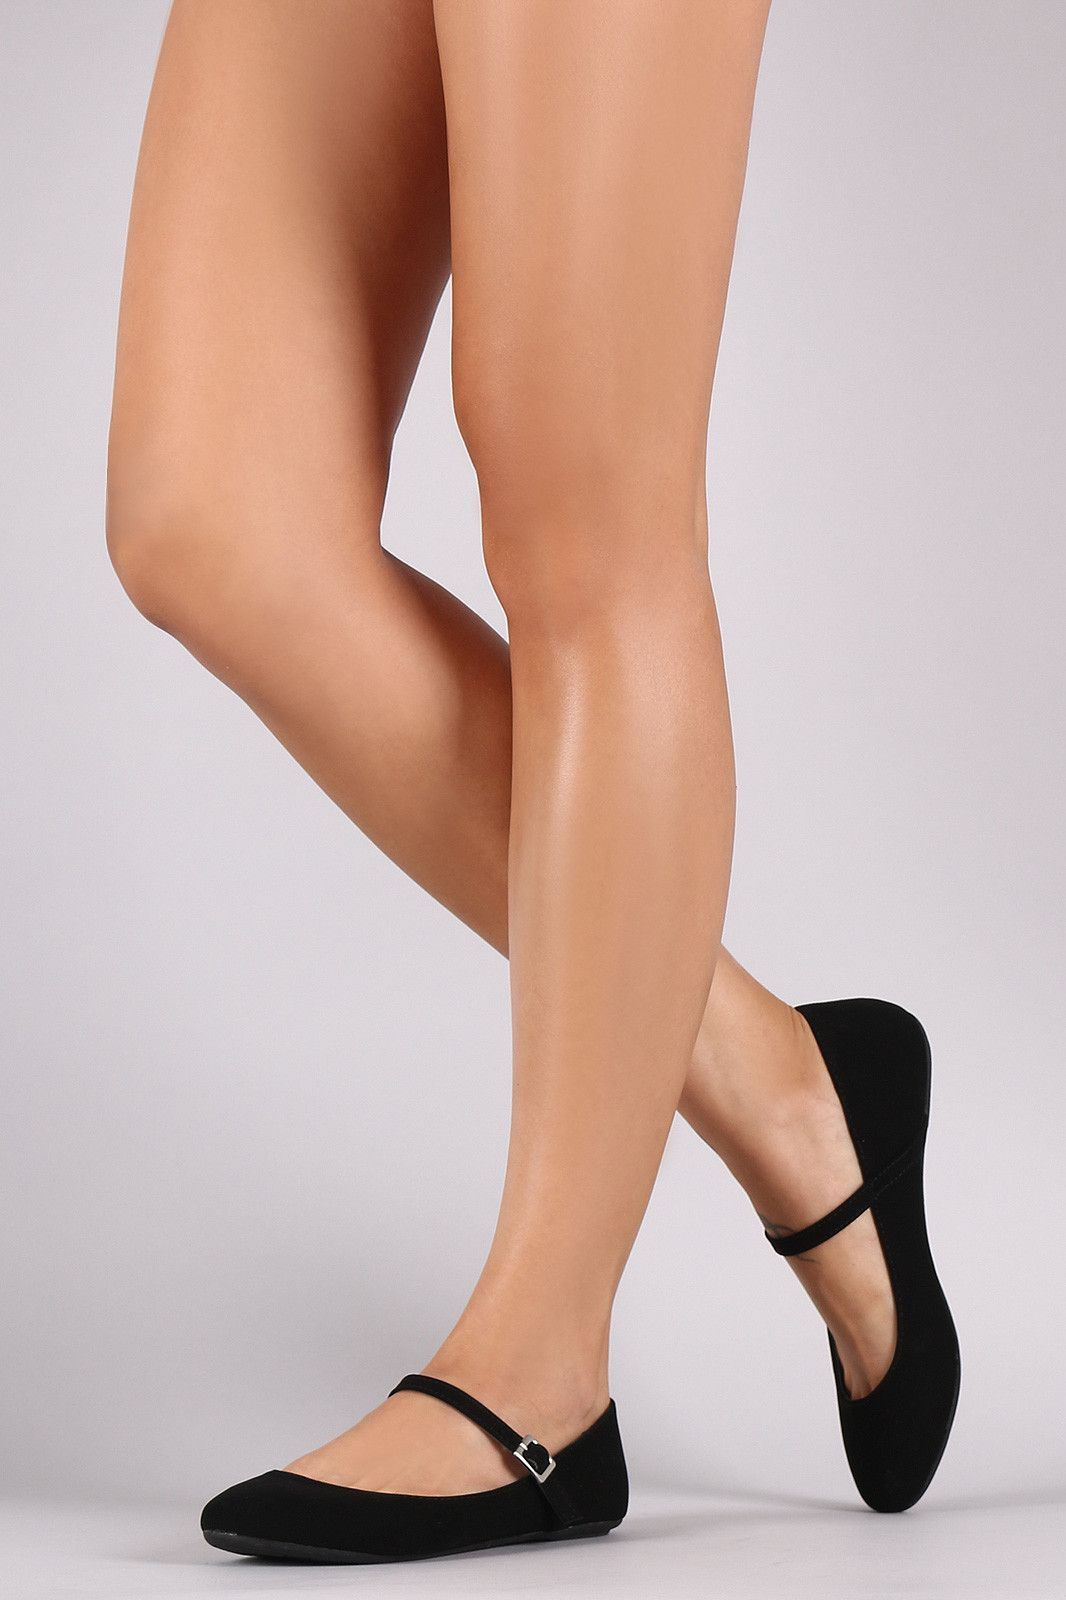 7247962c0 This cute ballet flat features a round toe silhouette